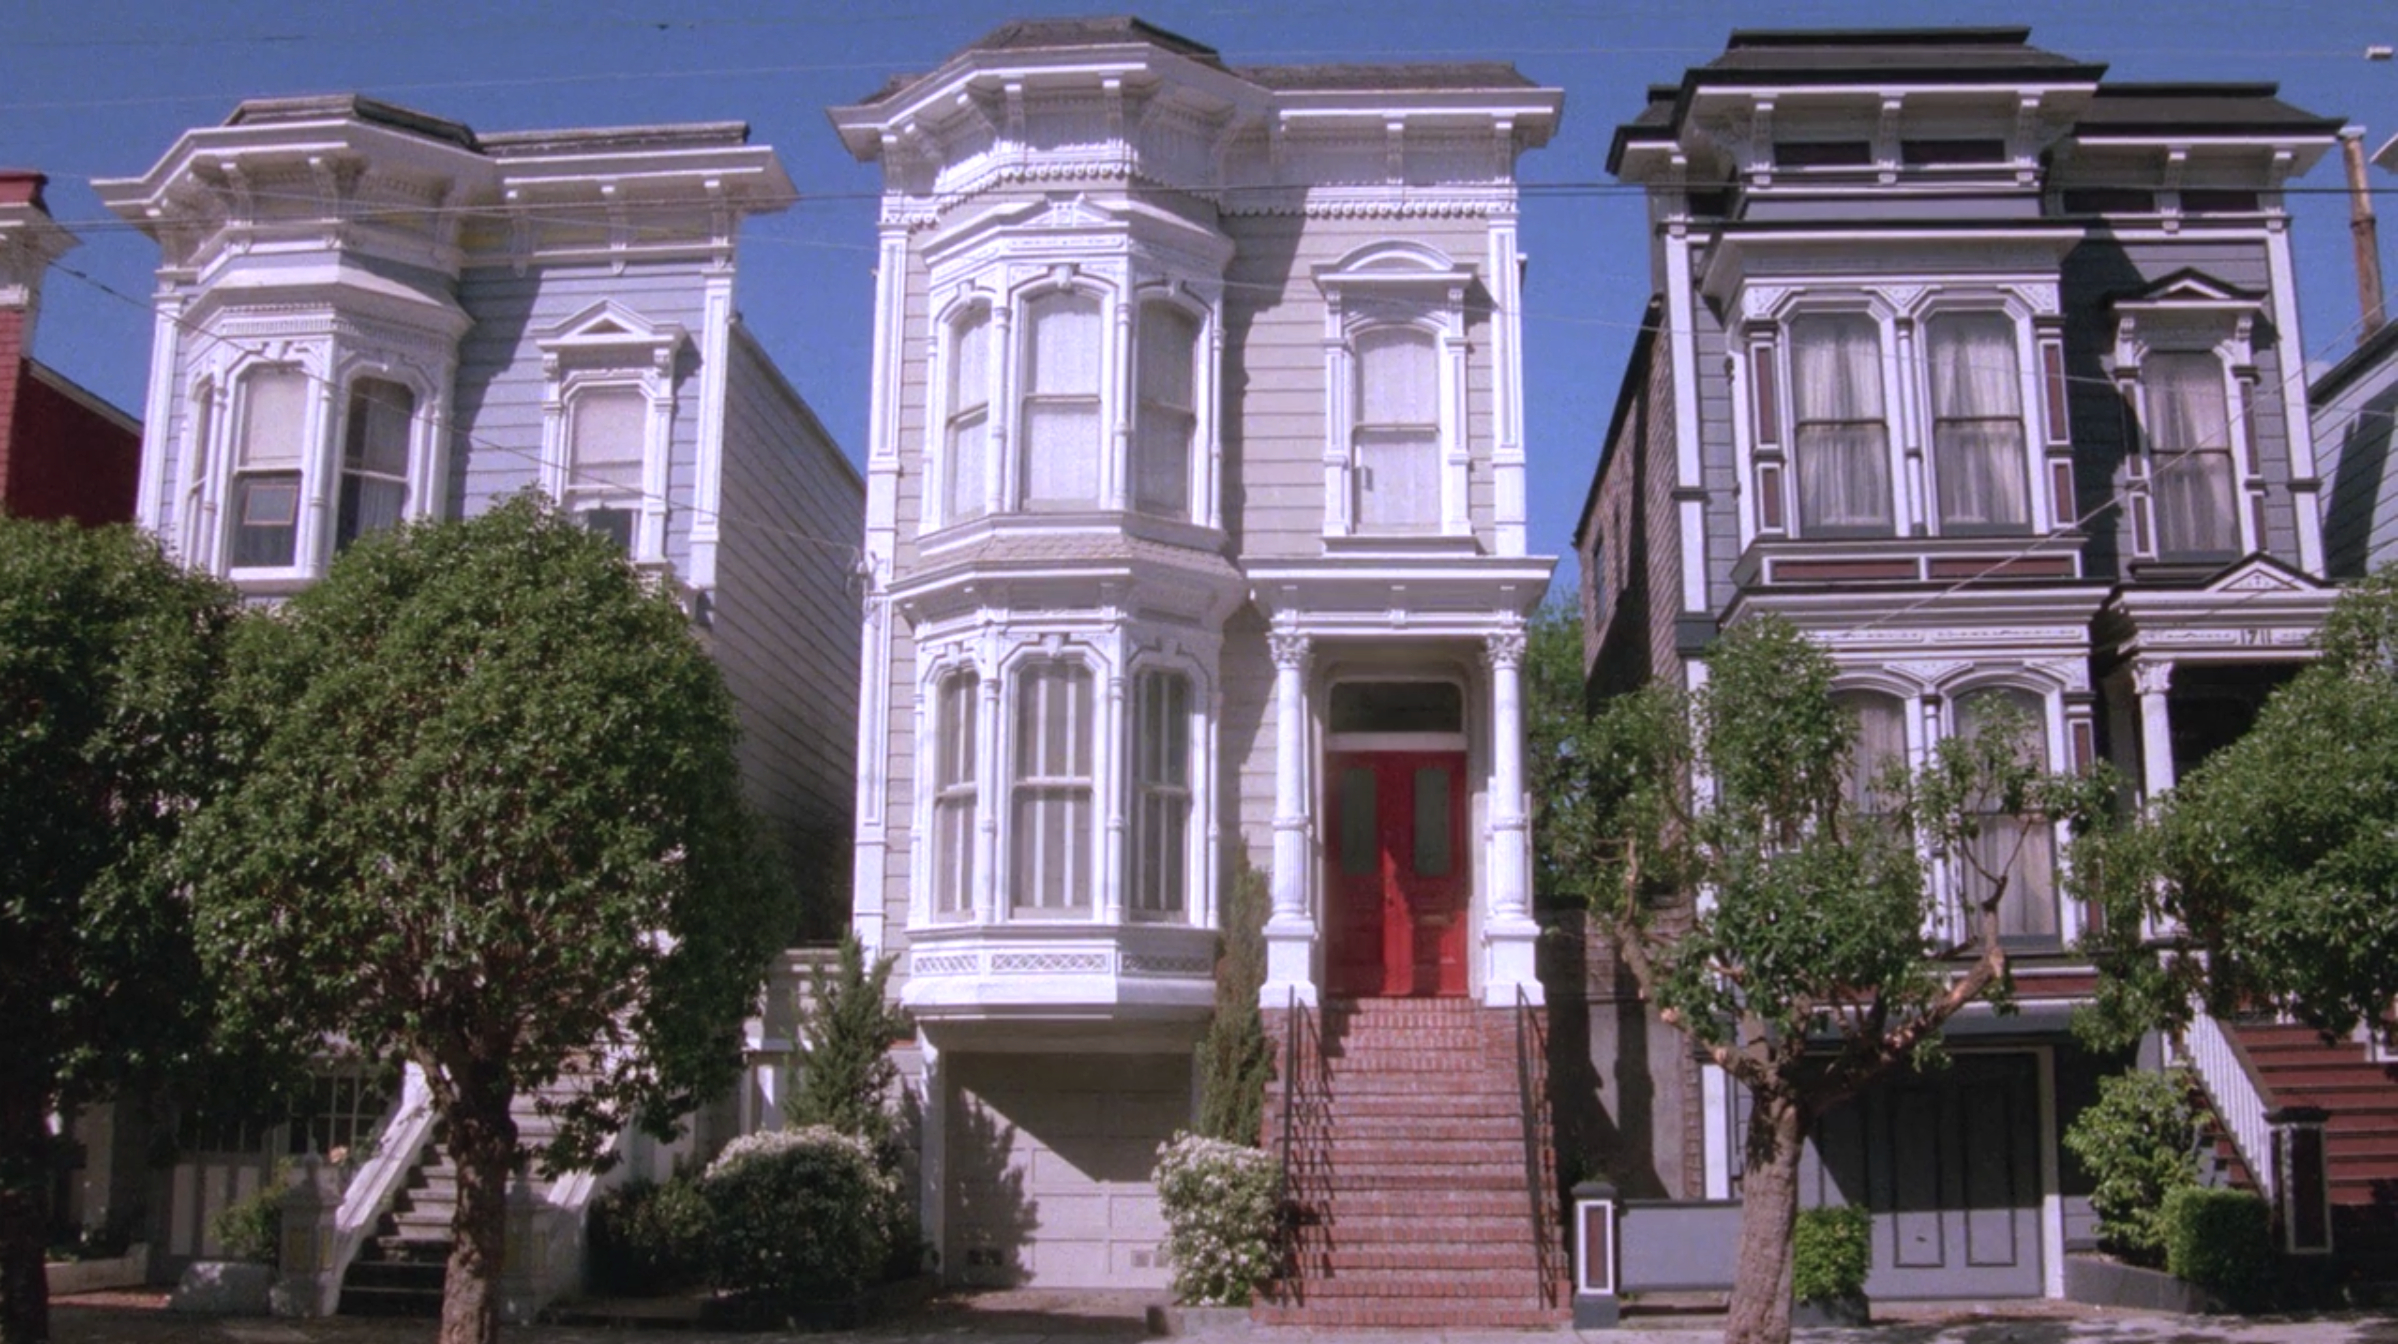 39 full house 39 house in san francisco no longer open to for Fully house